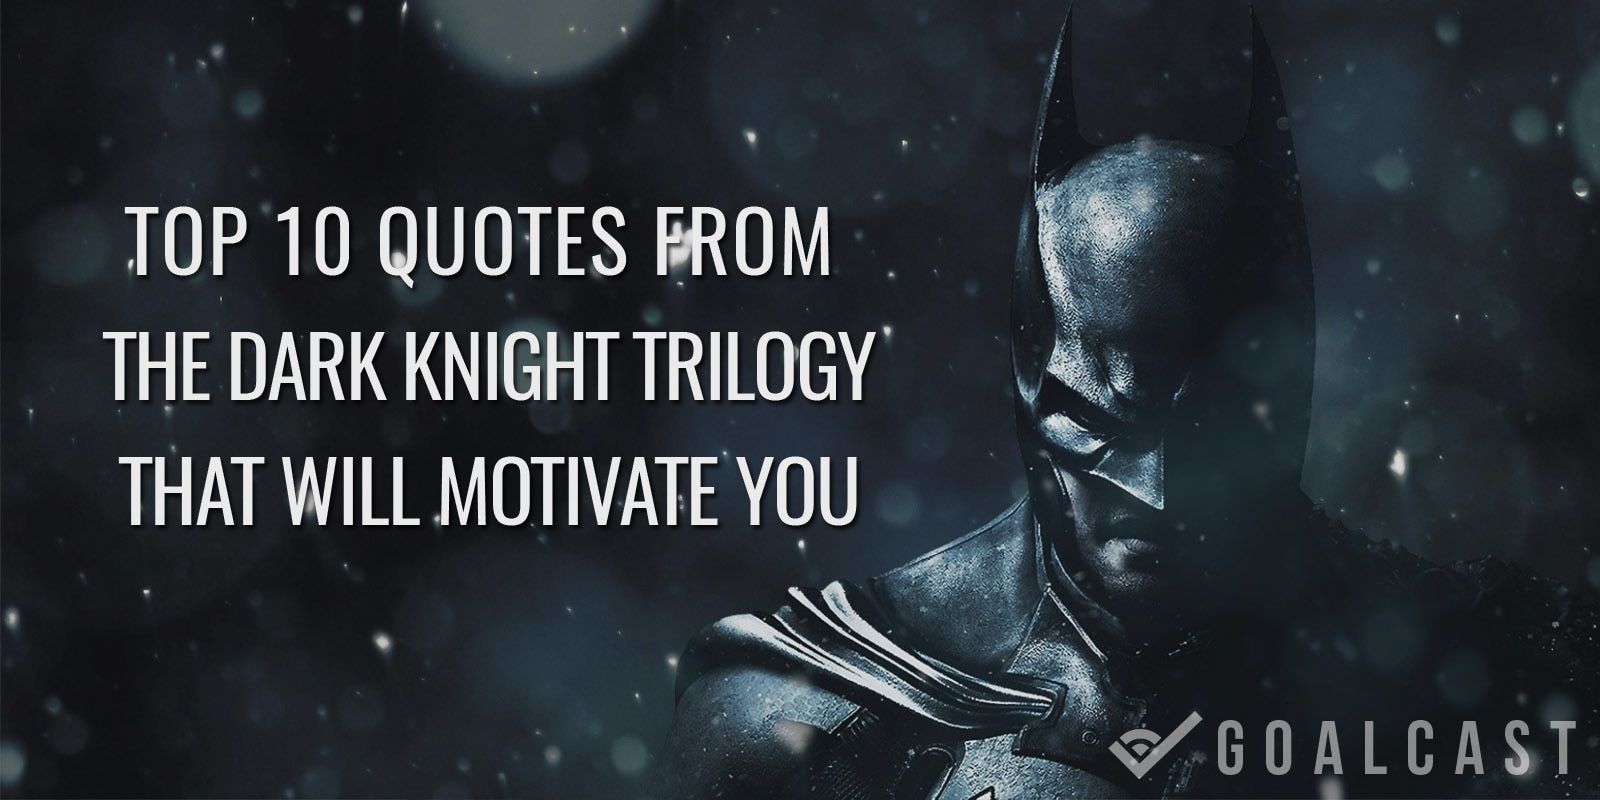 Joker Hd Wallpapers With Quotes Top 10 Quotes From Batman Dark Knight Trilogy That Will